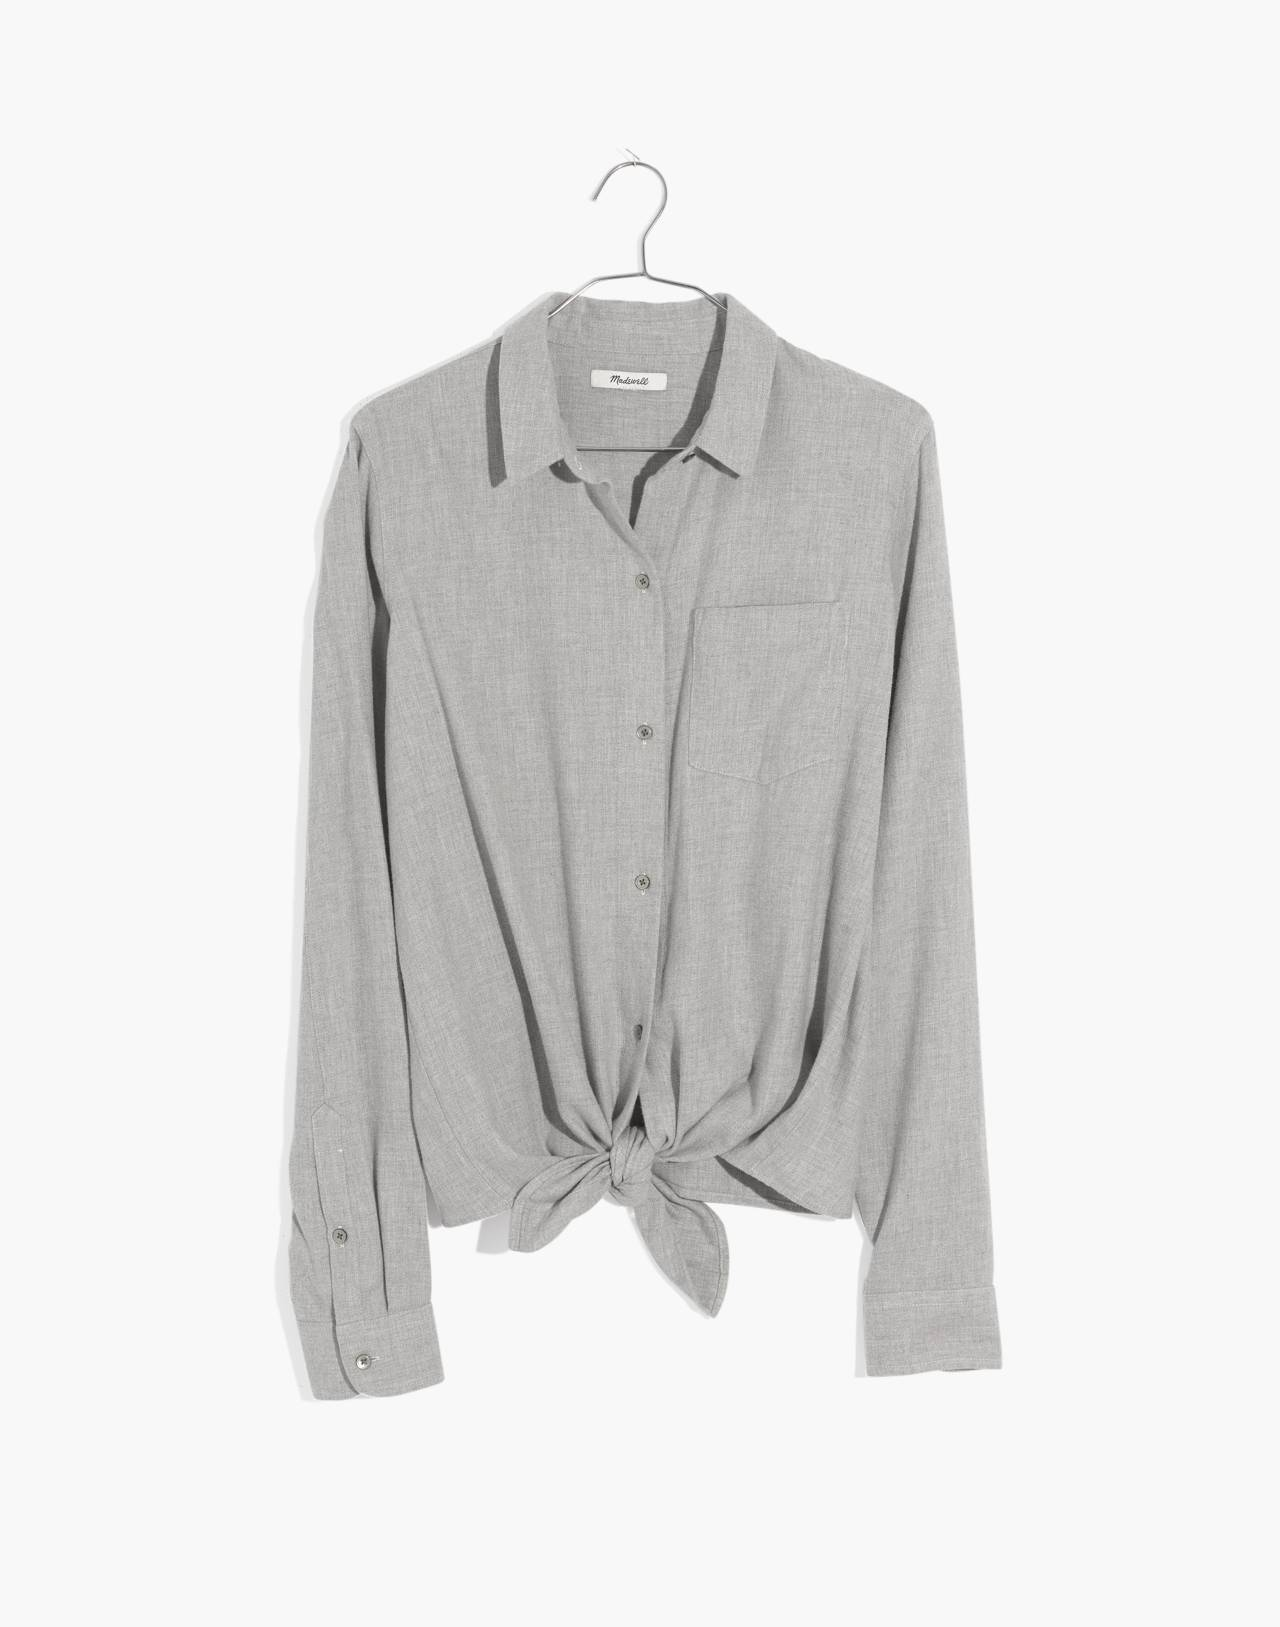 Flannel Tie-Front Shirt in hthr pewter image 4